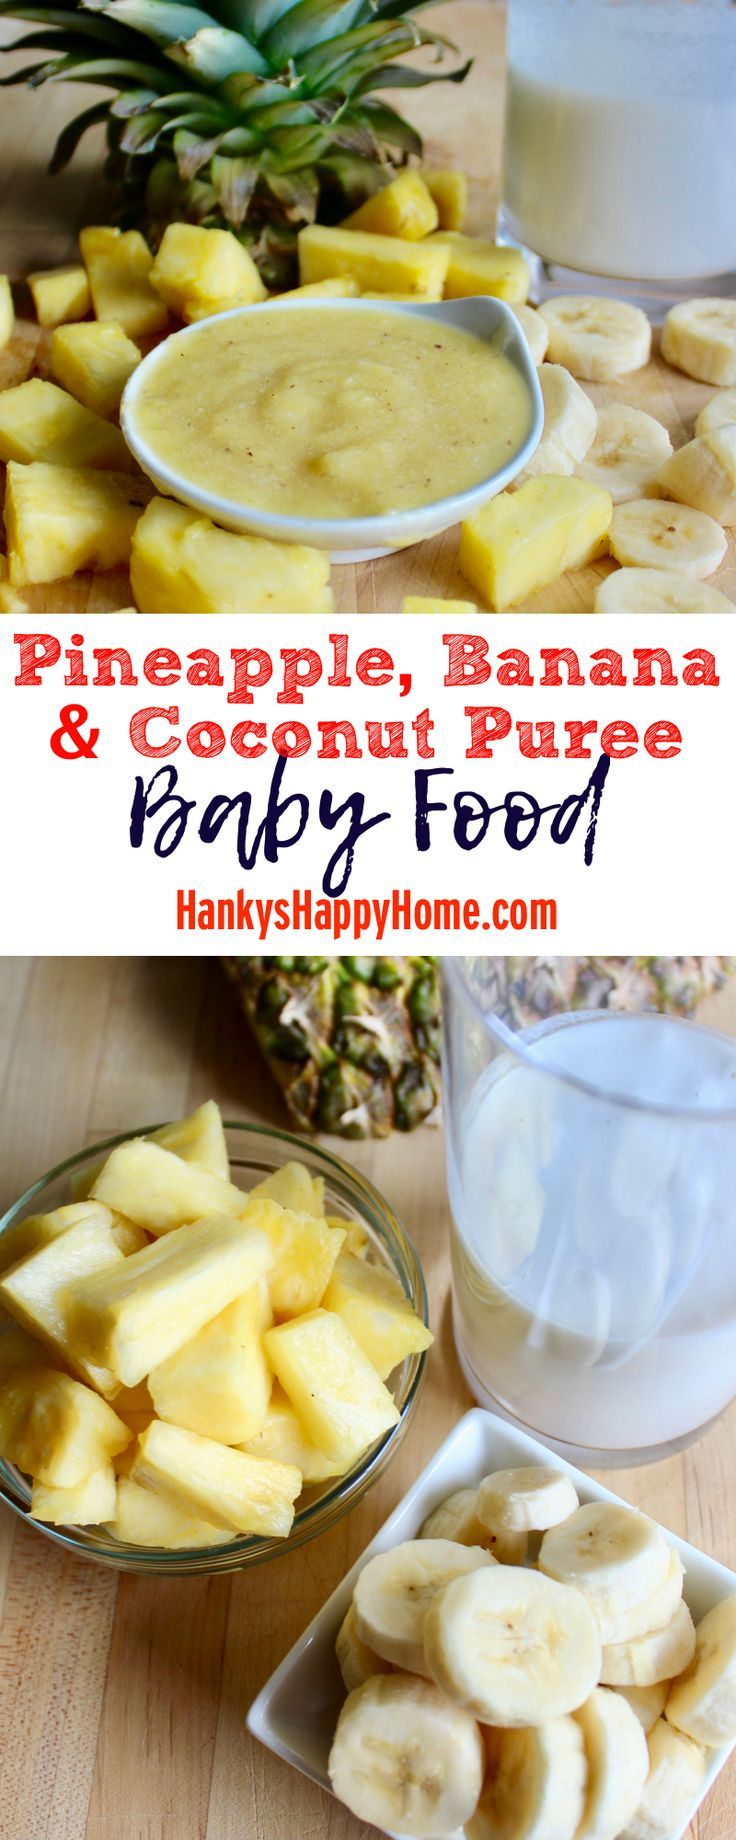 This quick and easy Pineapple, Banana & Coconut Puree tastes like summer and requires no cooking whatsoever.